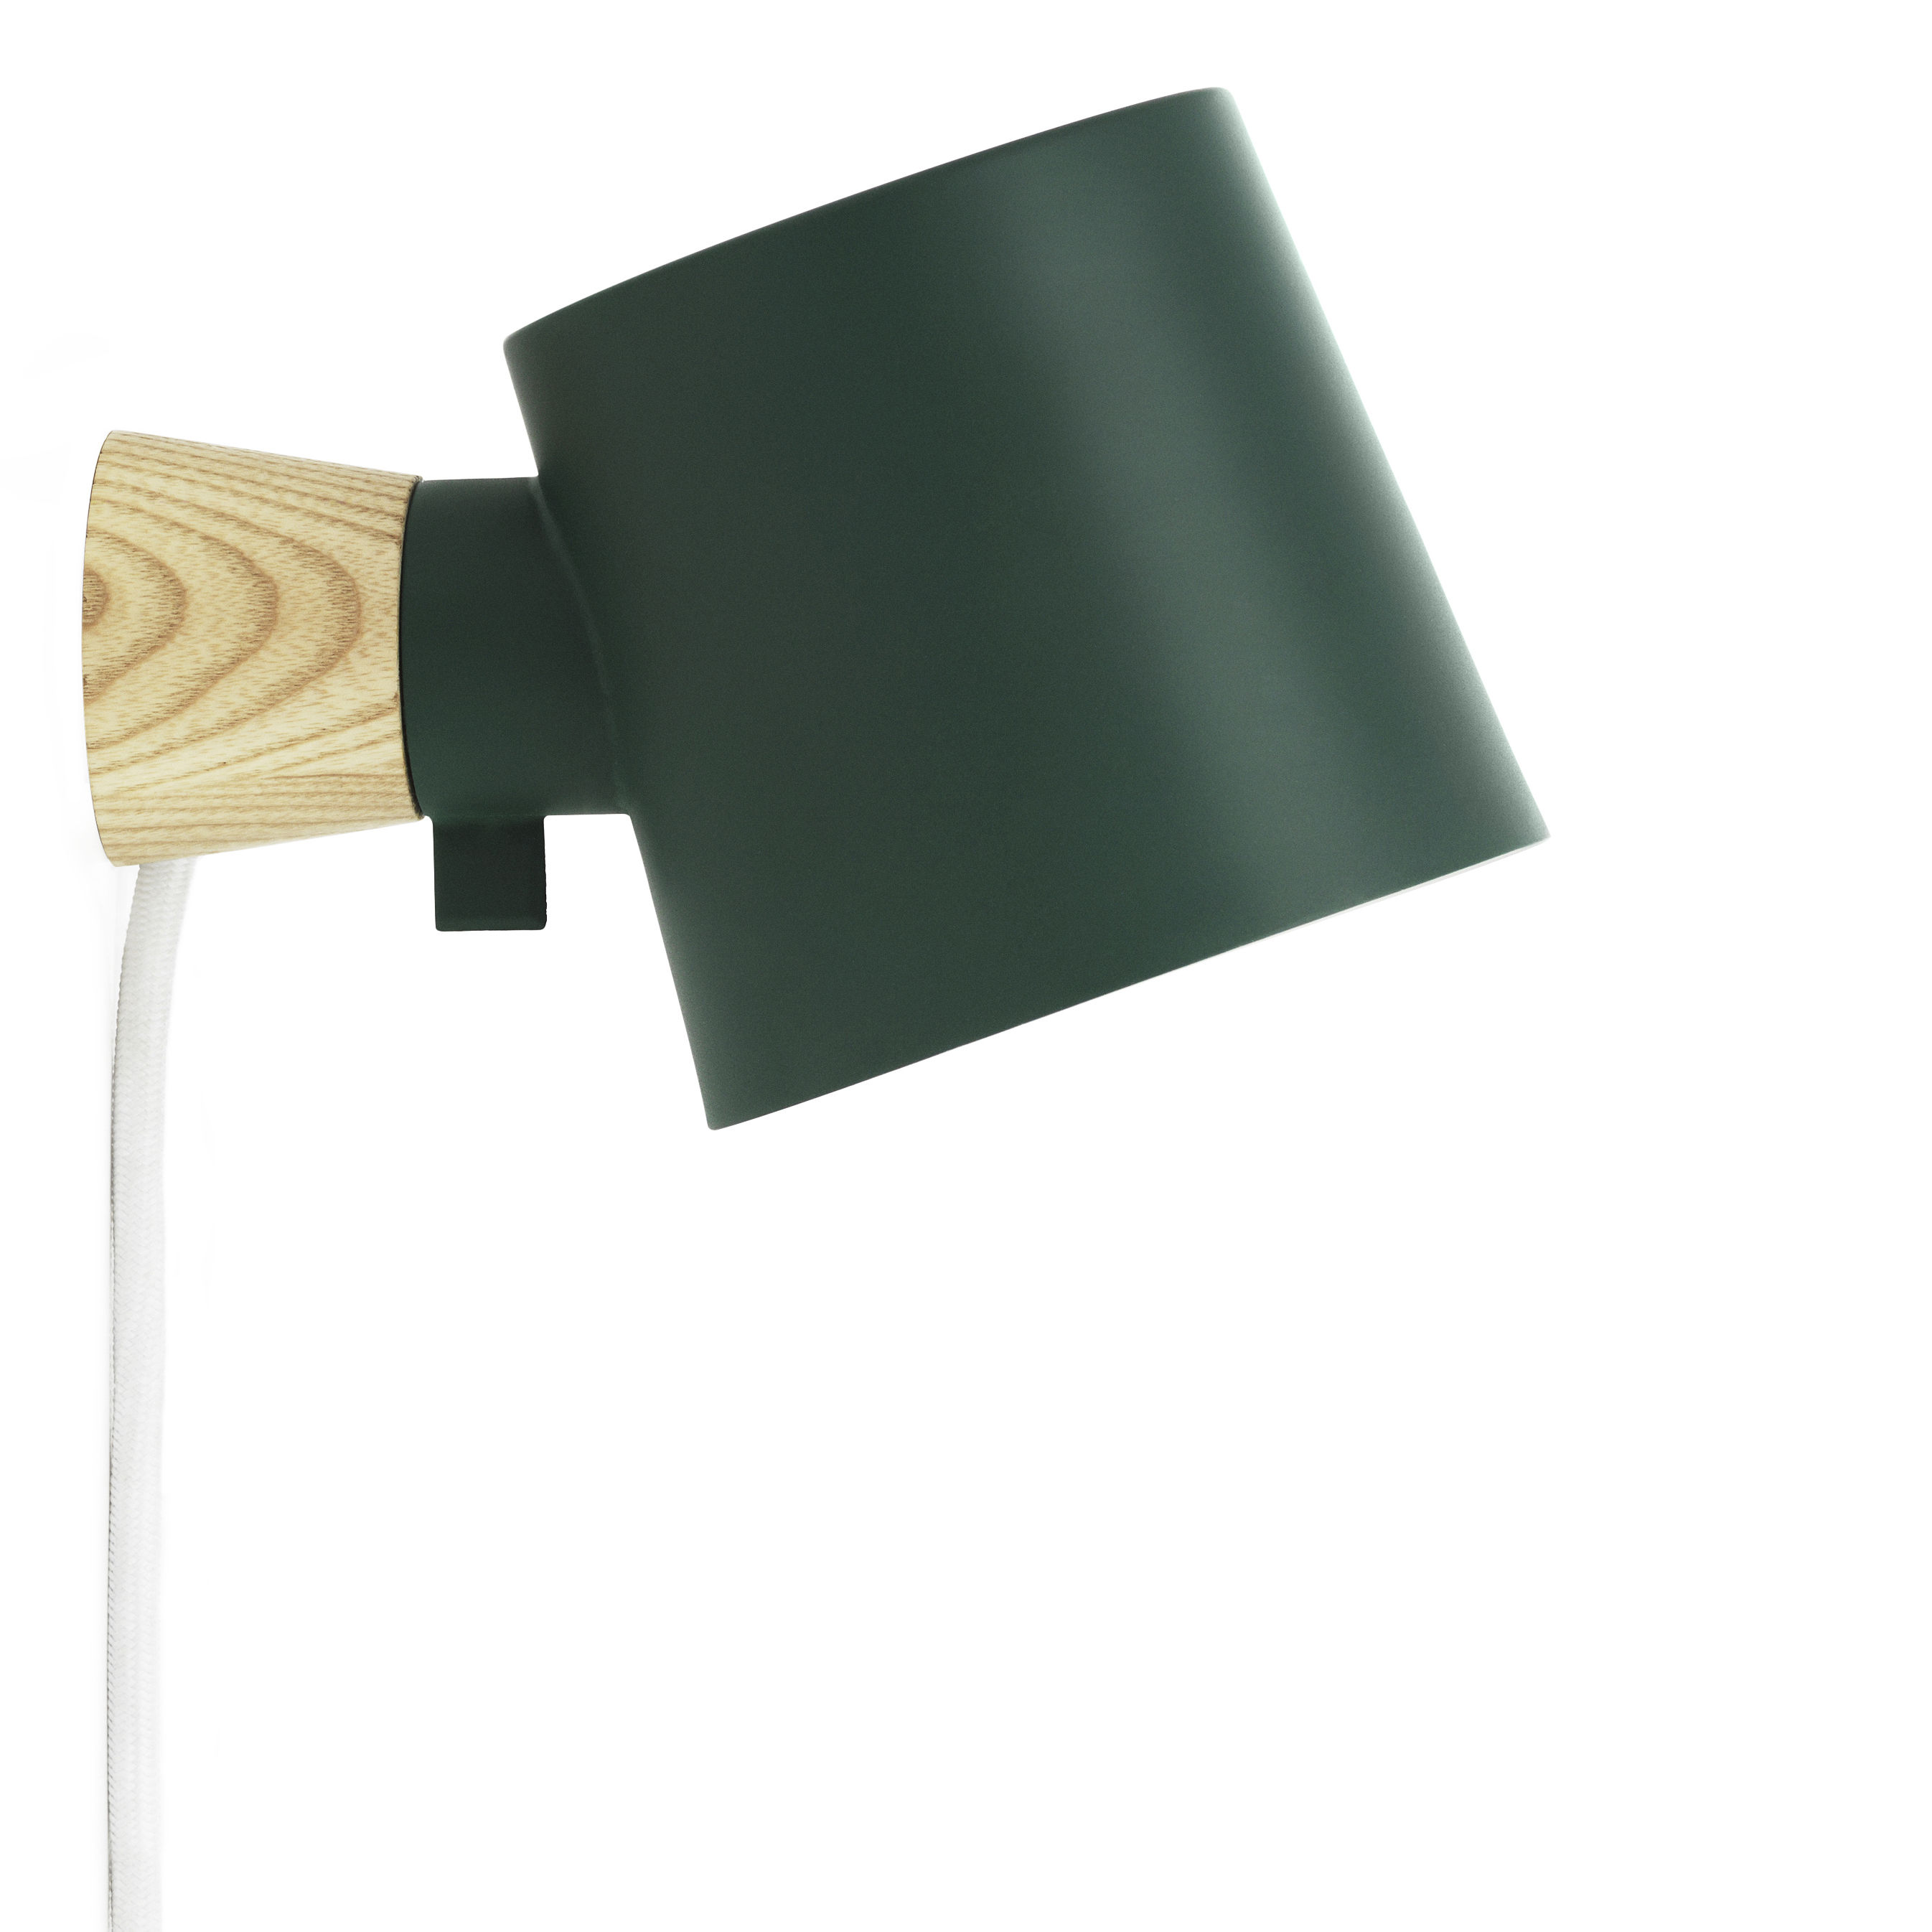 Lighting - Wall Lights - Rise Wall light with plug - Rotating / Wood & metal by Normann Copenhagen - Green - Ashwood, Lacquered metal